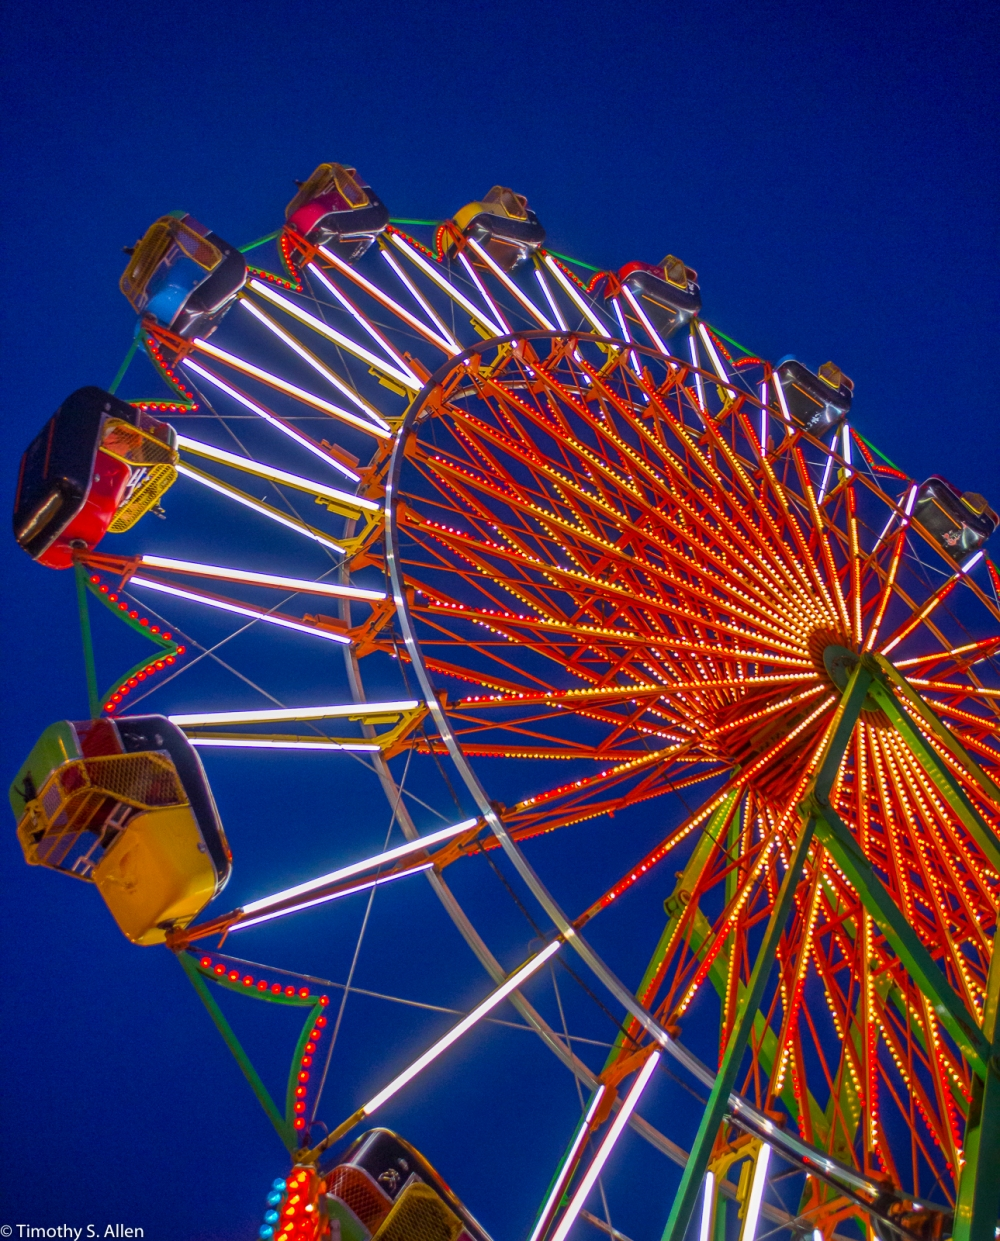 Midway at the California State Fair Sacramento, CA, U.S.A. July 12, 2014